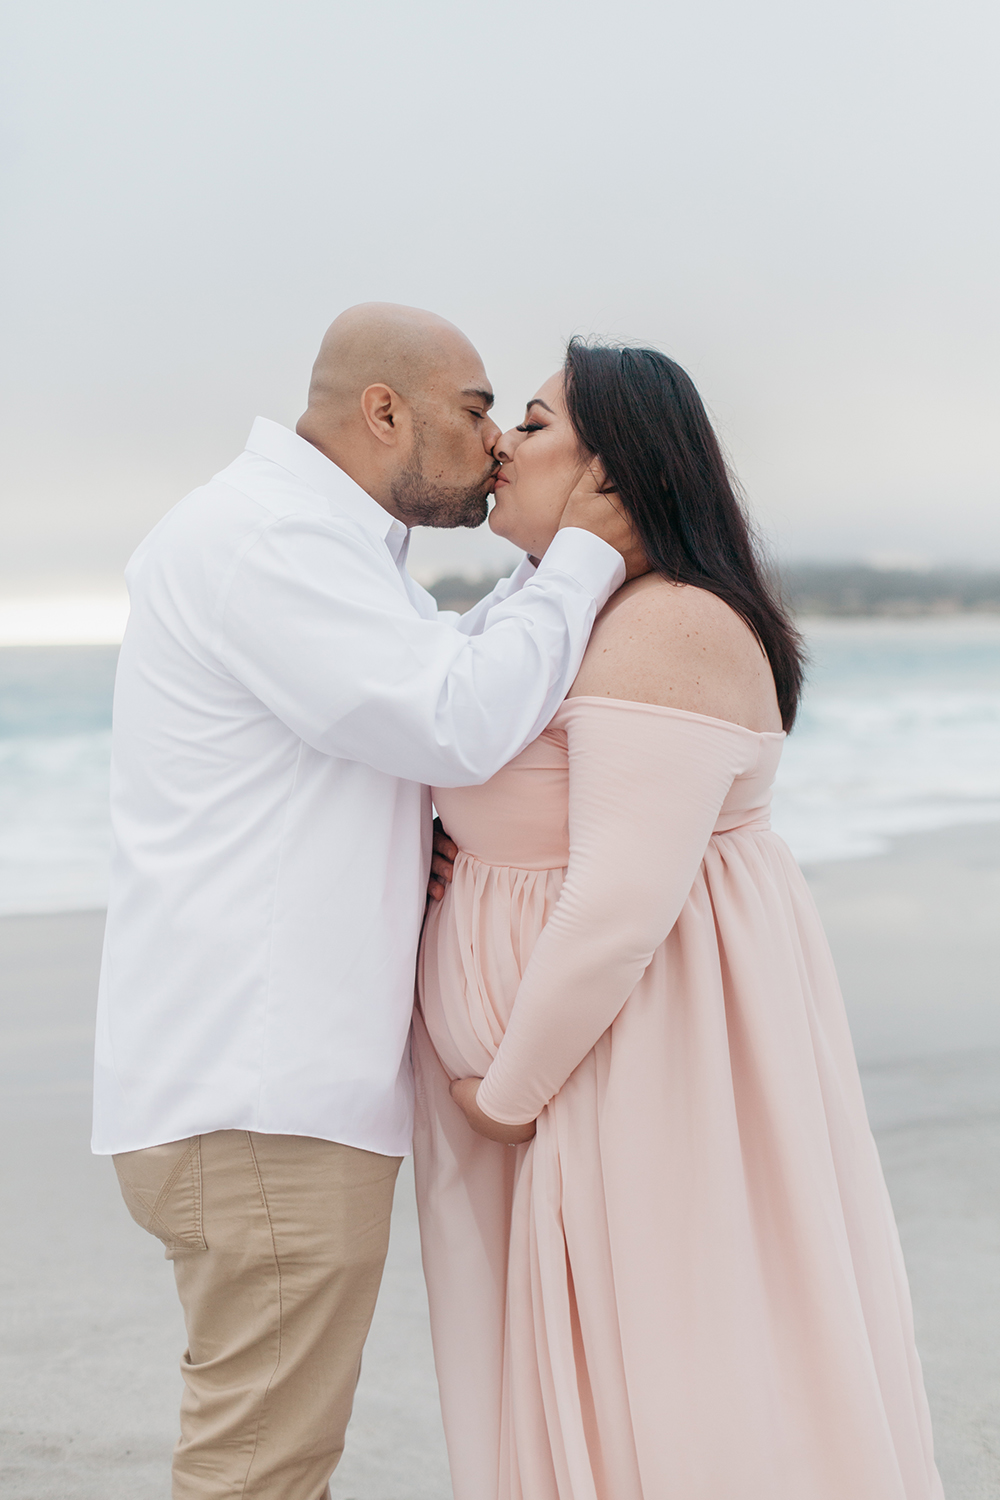 Husband and wife kissing during their maternity photos in Carmel-by-the-sea.